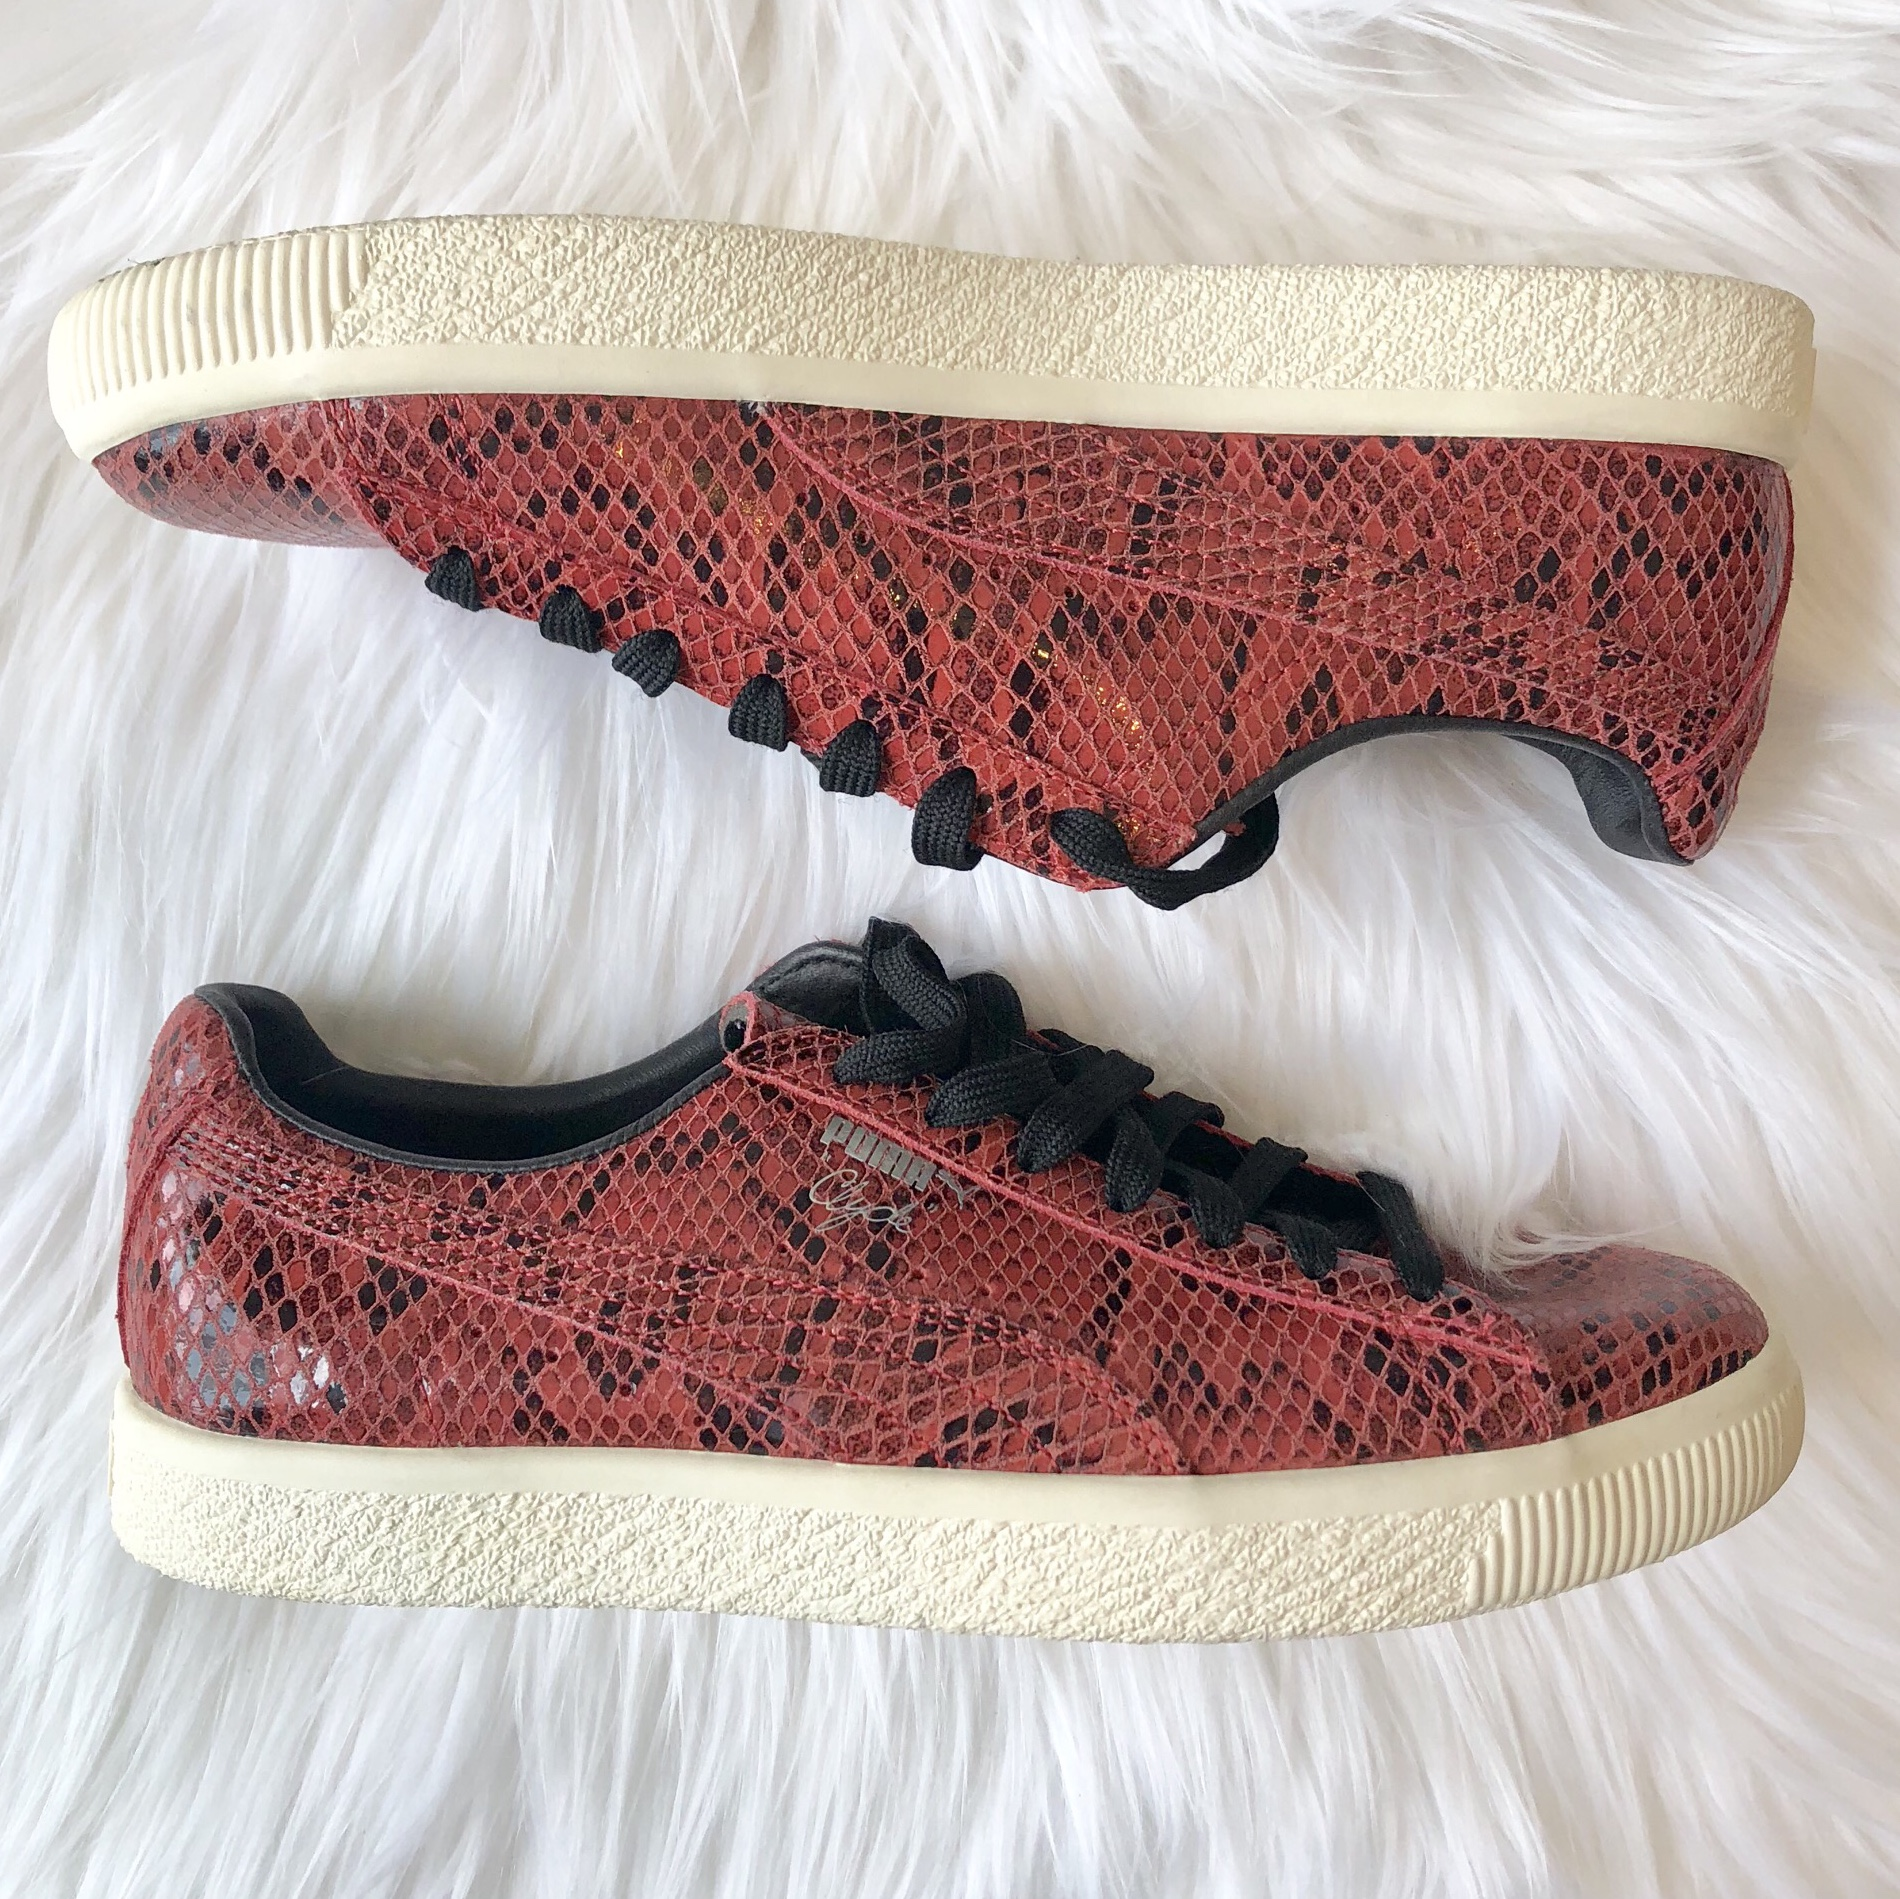 new style 2f092 d18cf Puma Clyde Snakeskin Sneakers Puma Clyde Red... - Depop